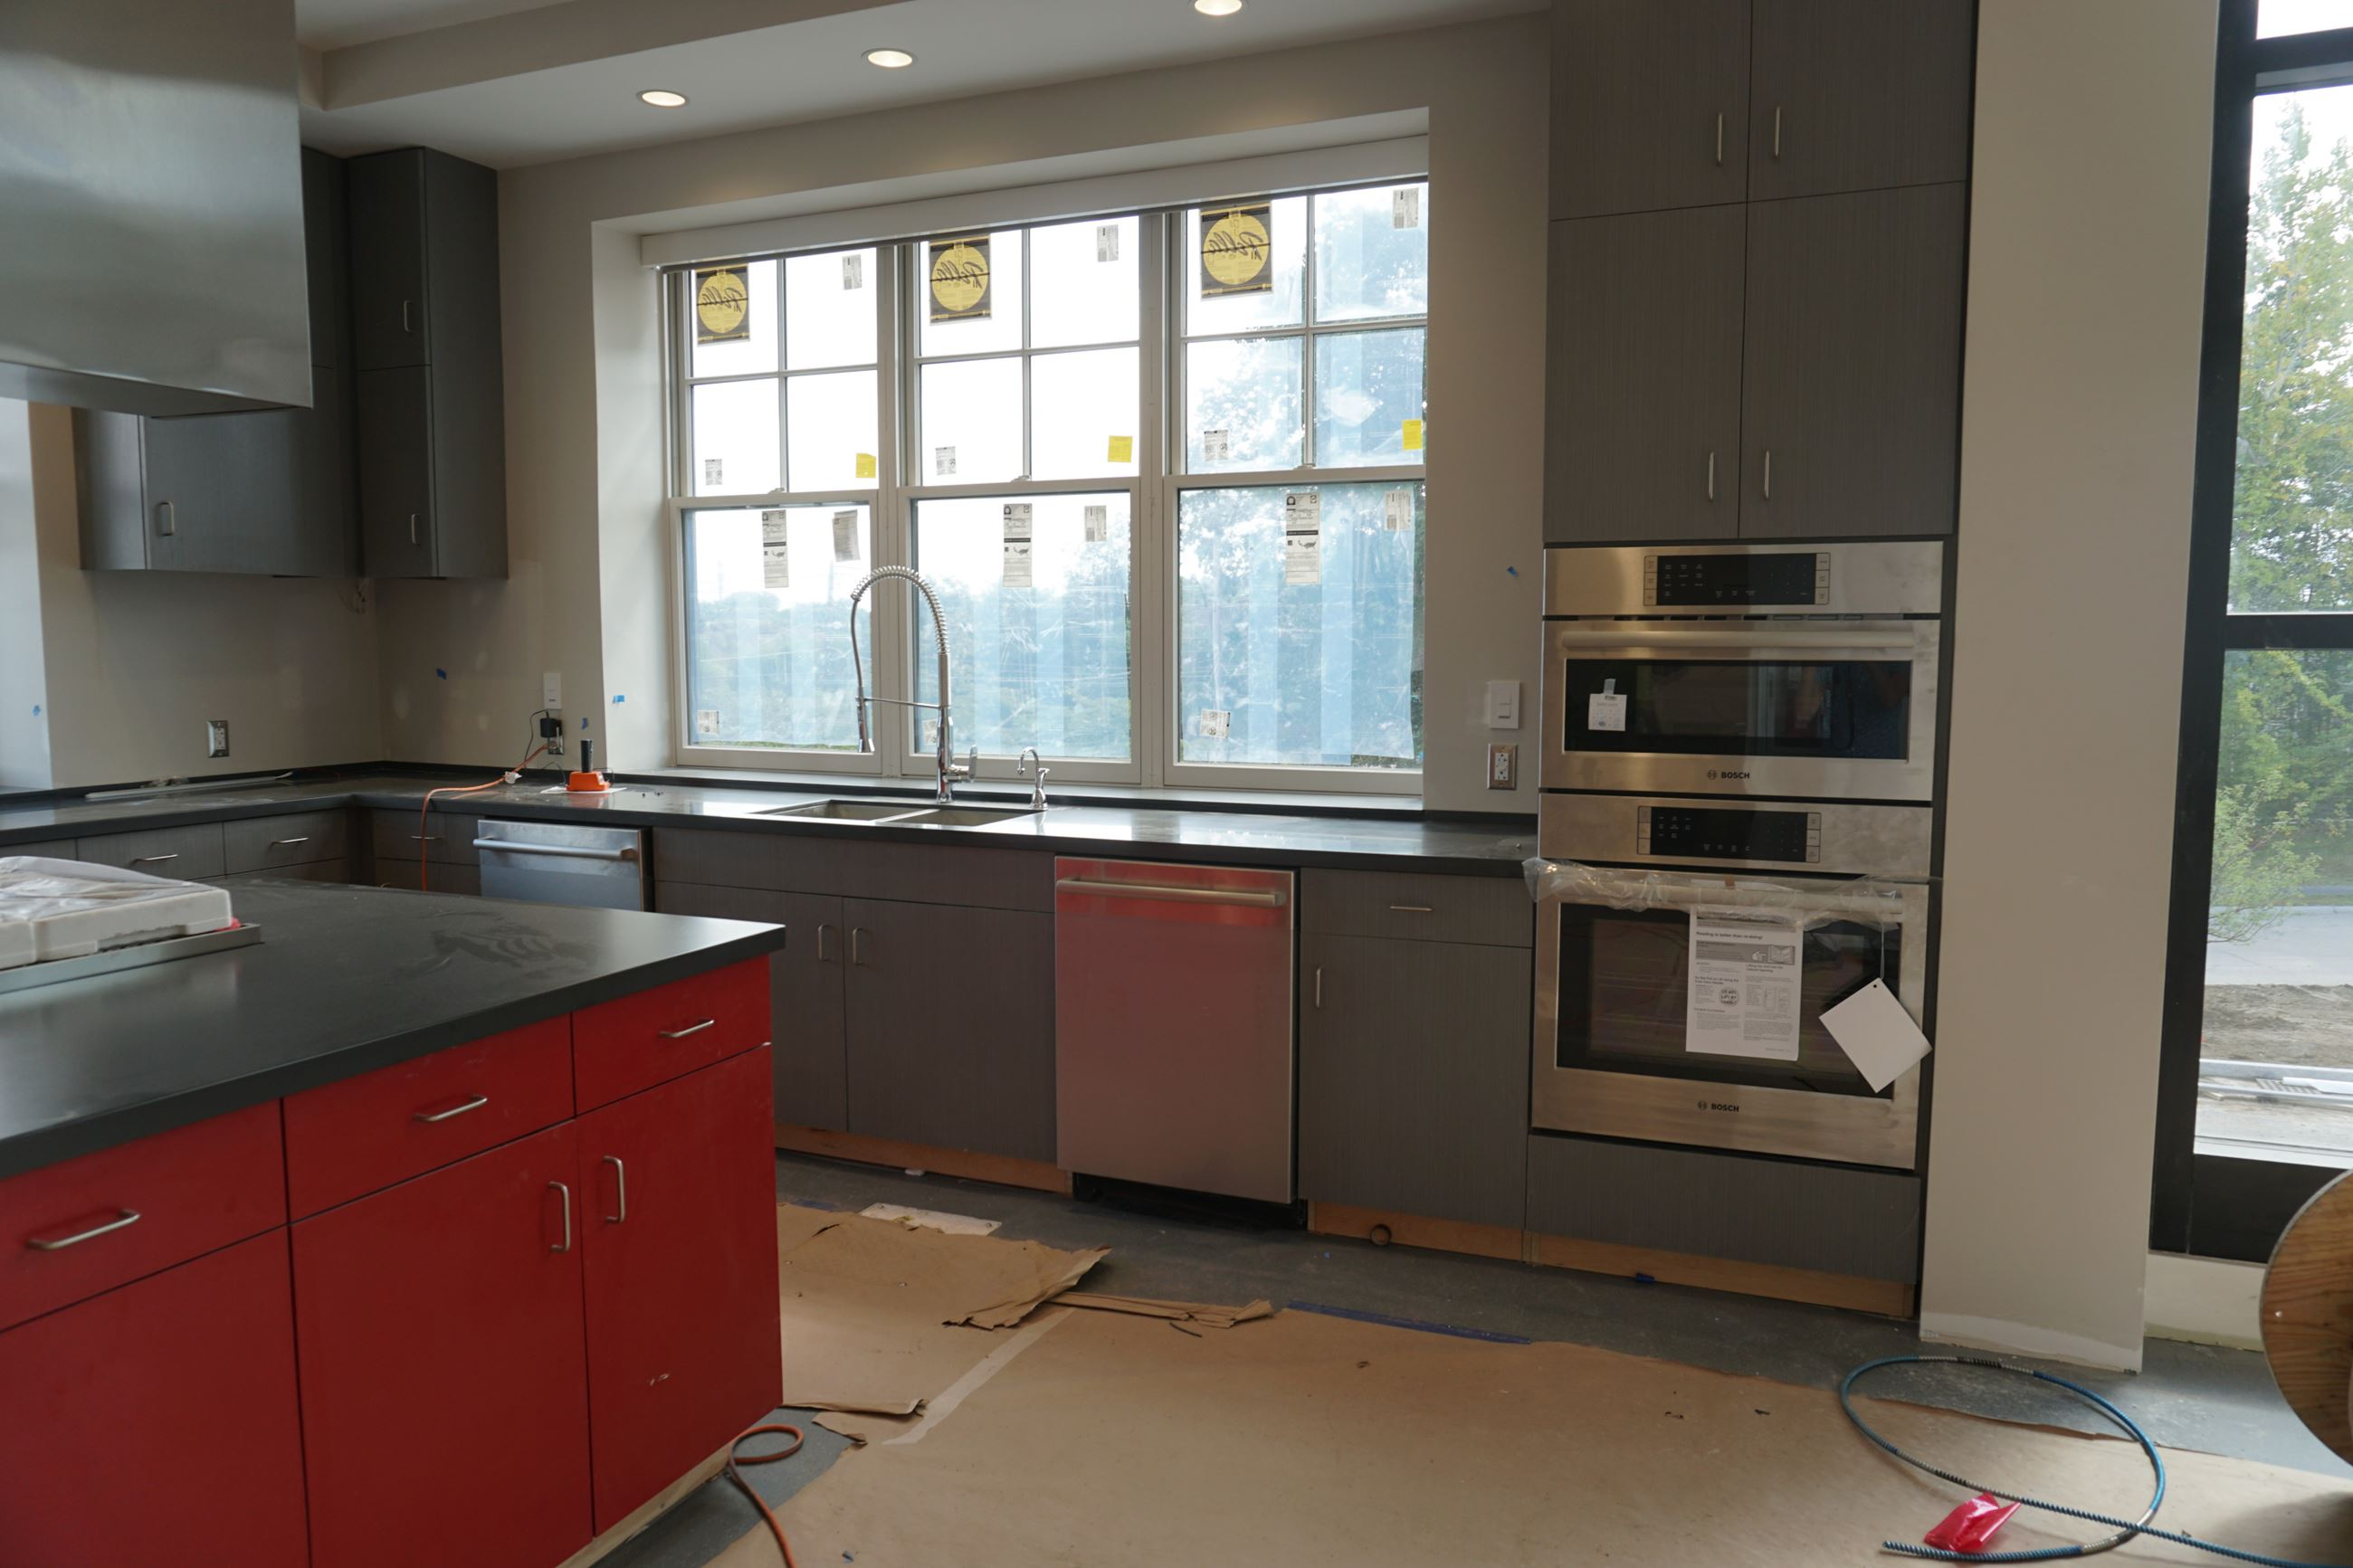 9-14-18 Second Floor Kitchen3